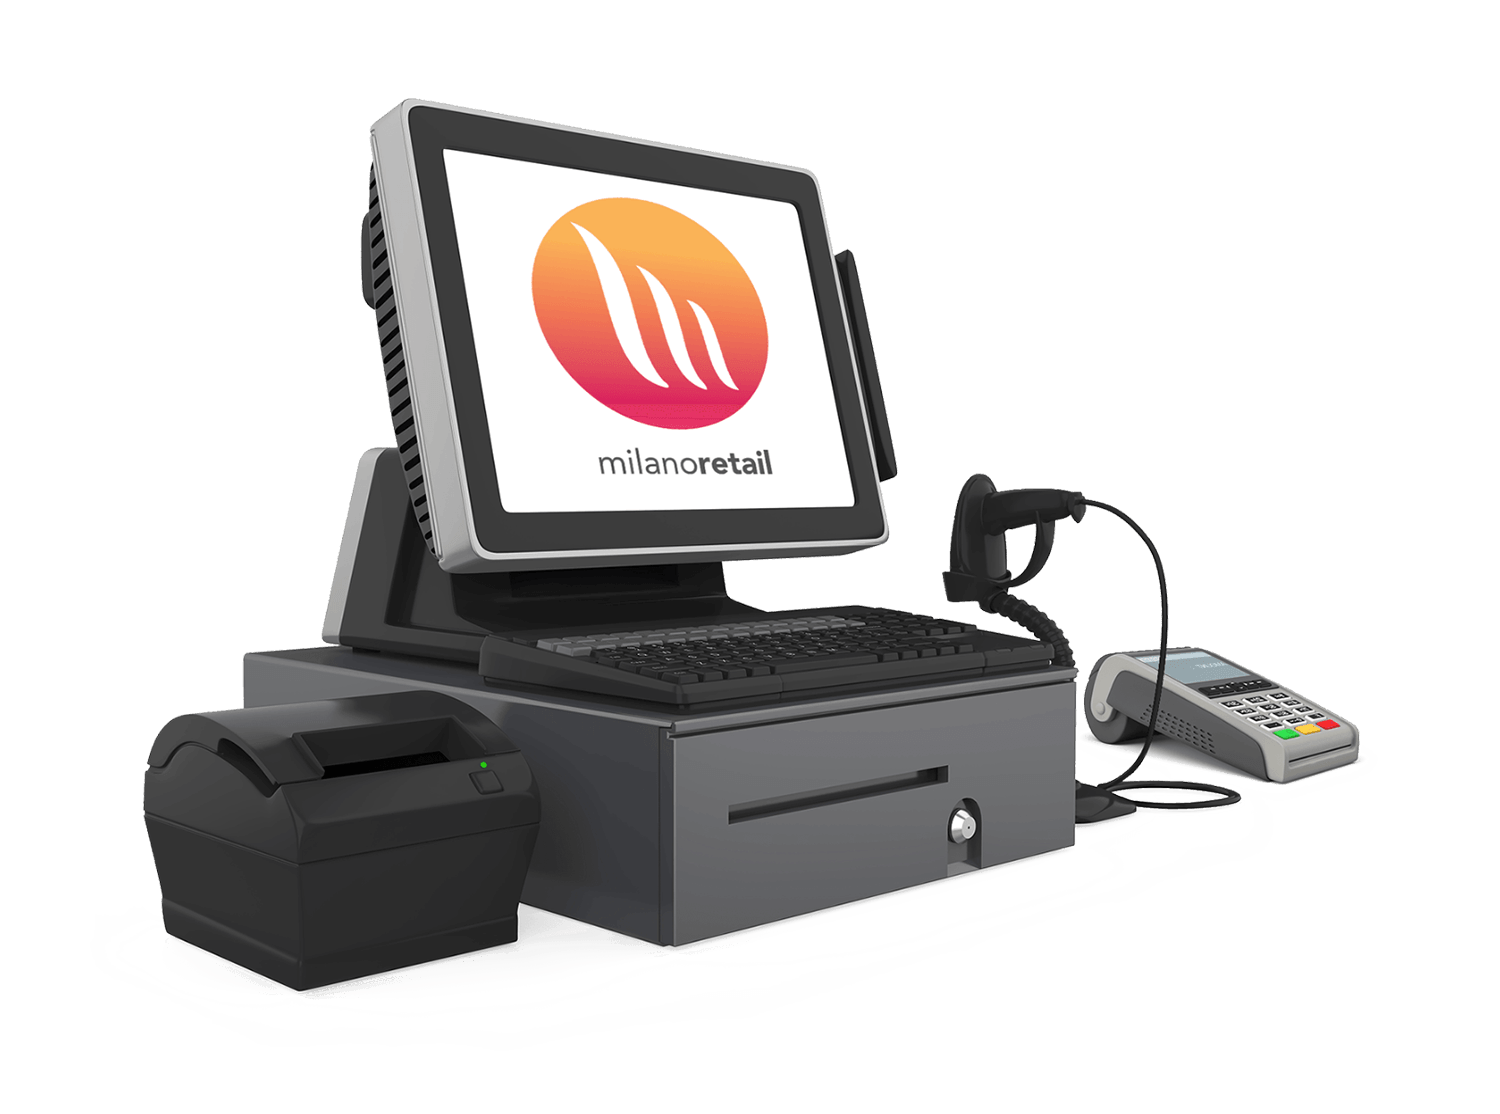 Pos Point of sale system, a feature of Milano Retail - Software for retail management with inventory management system